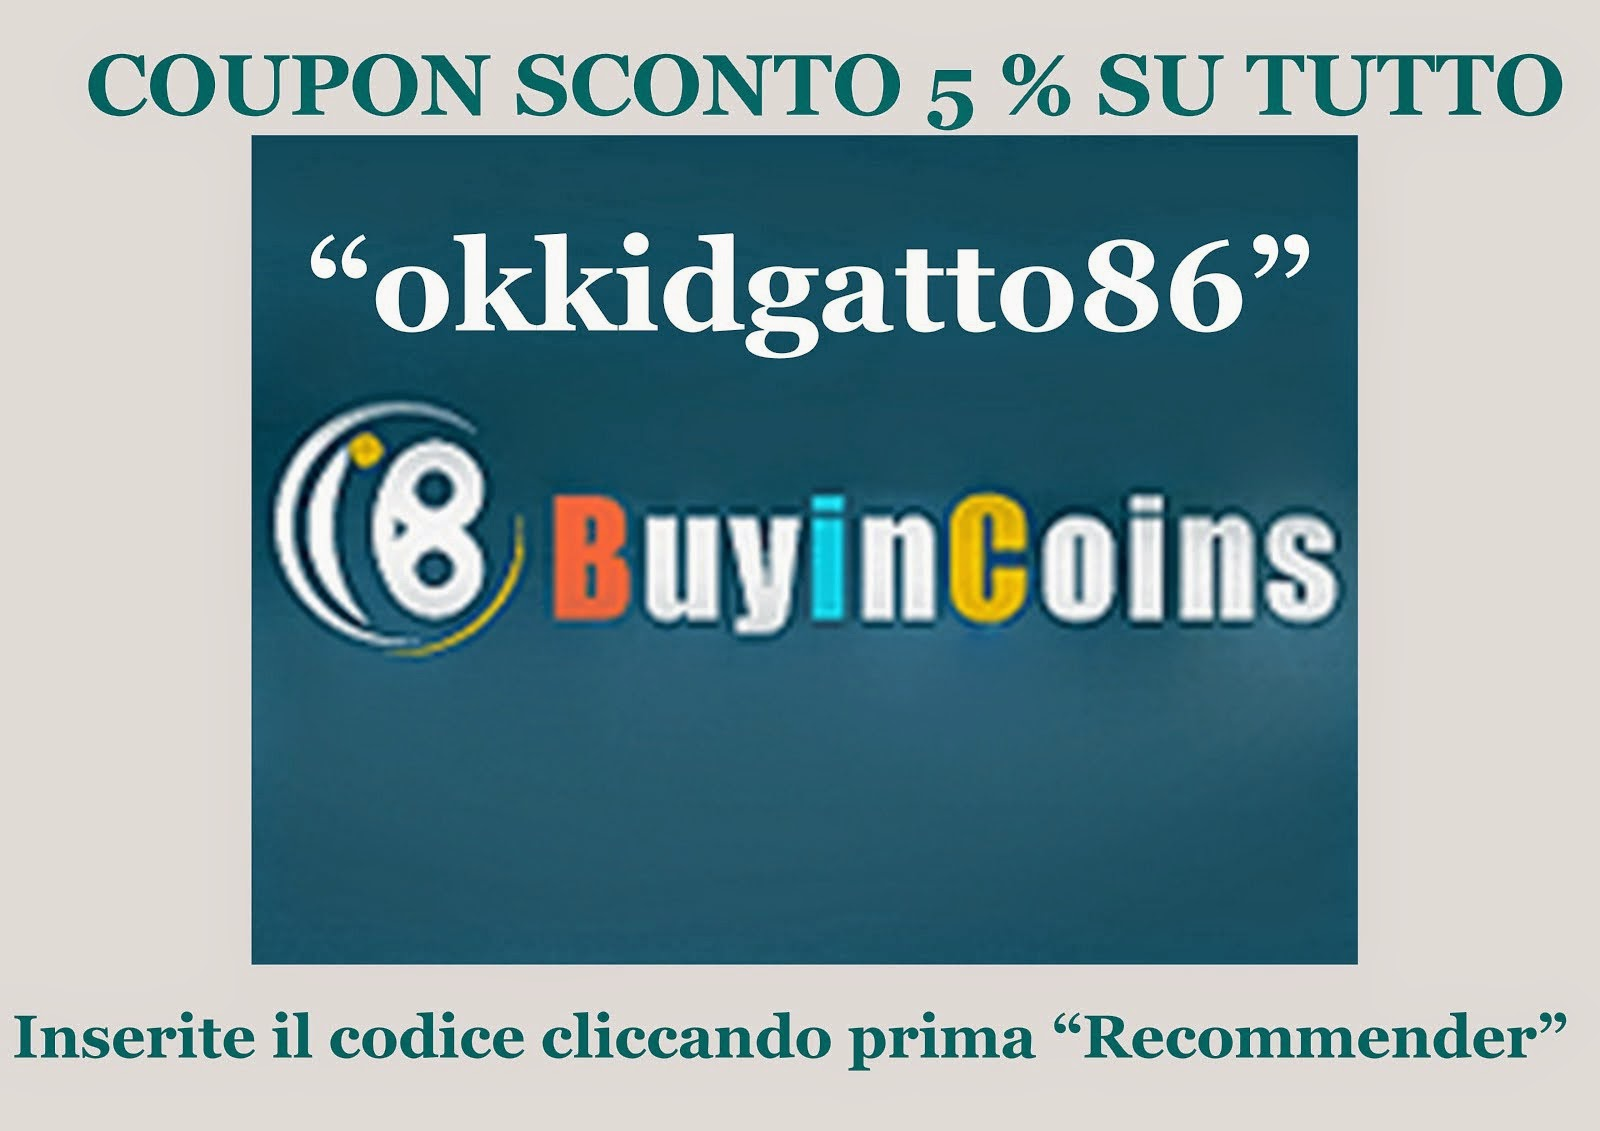 Buyincoins Coupon